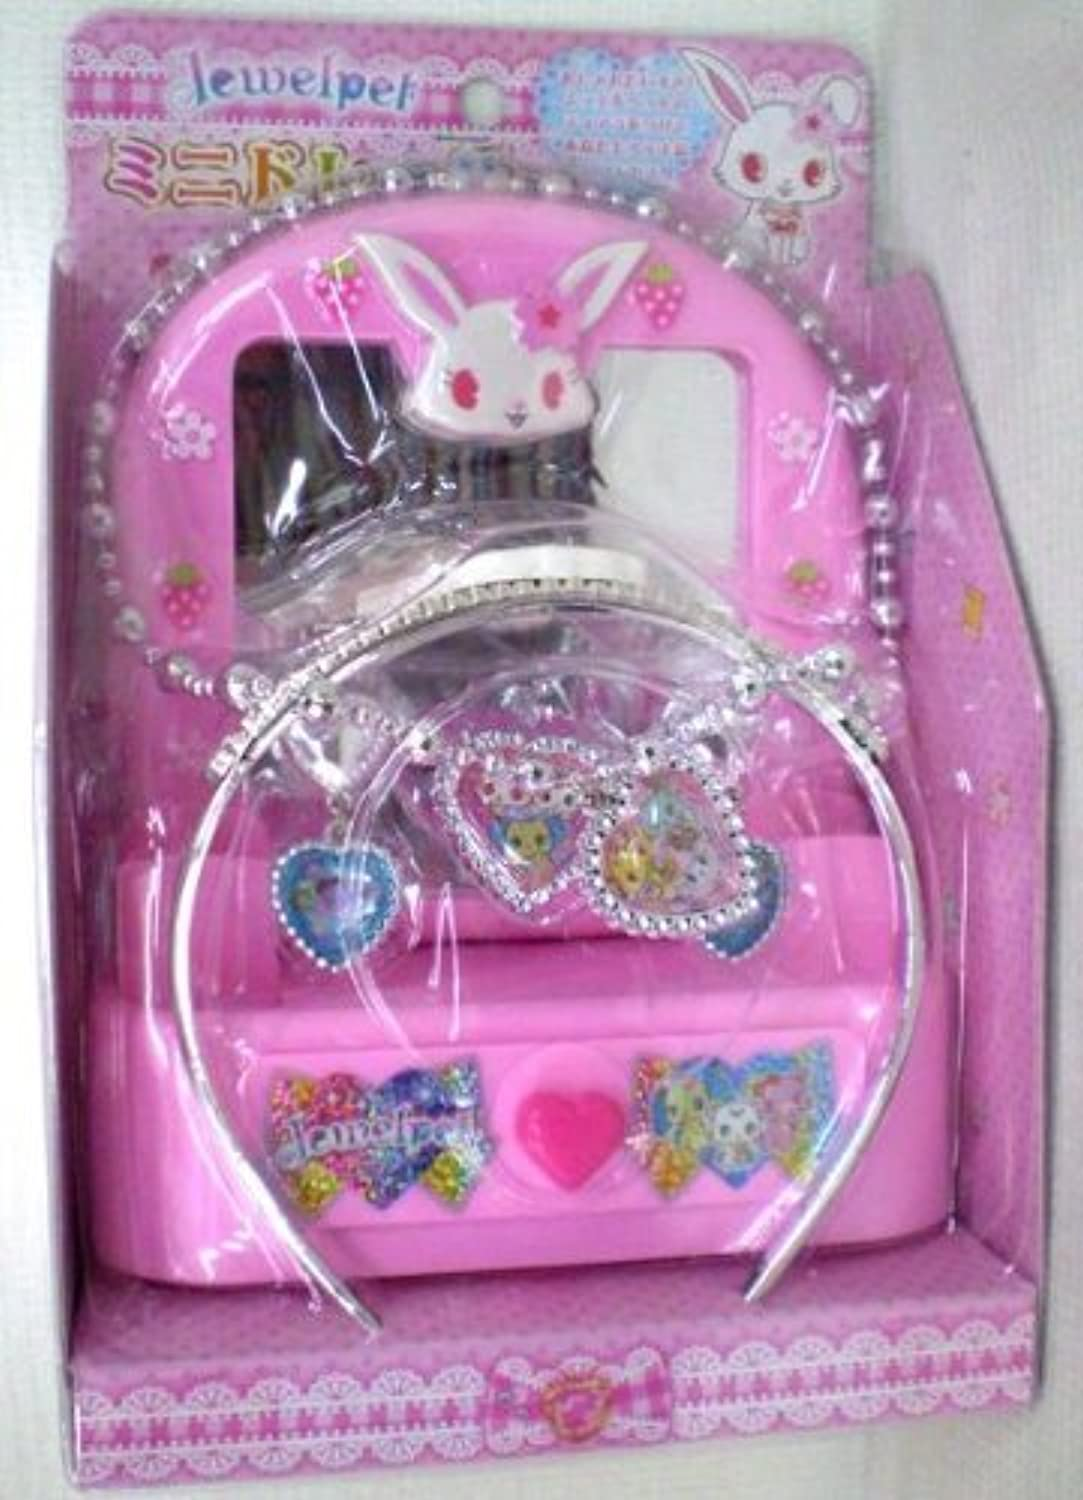 [Jewel] pet mini dresser (japan import)